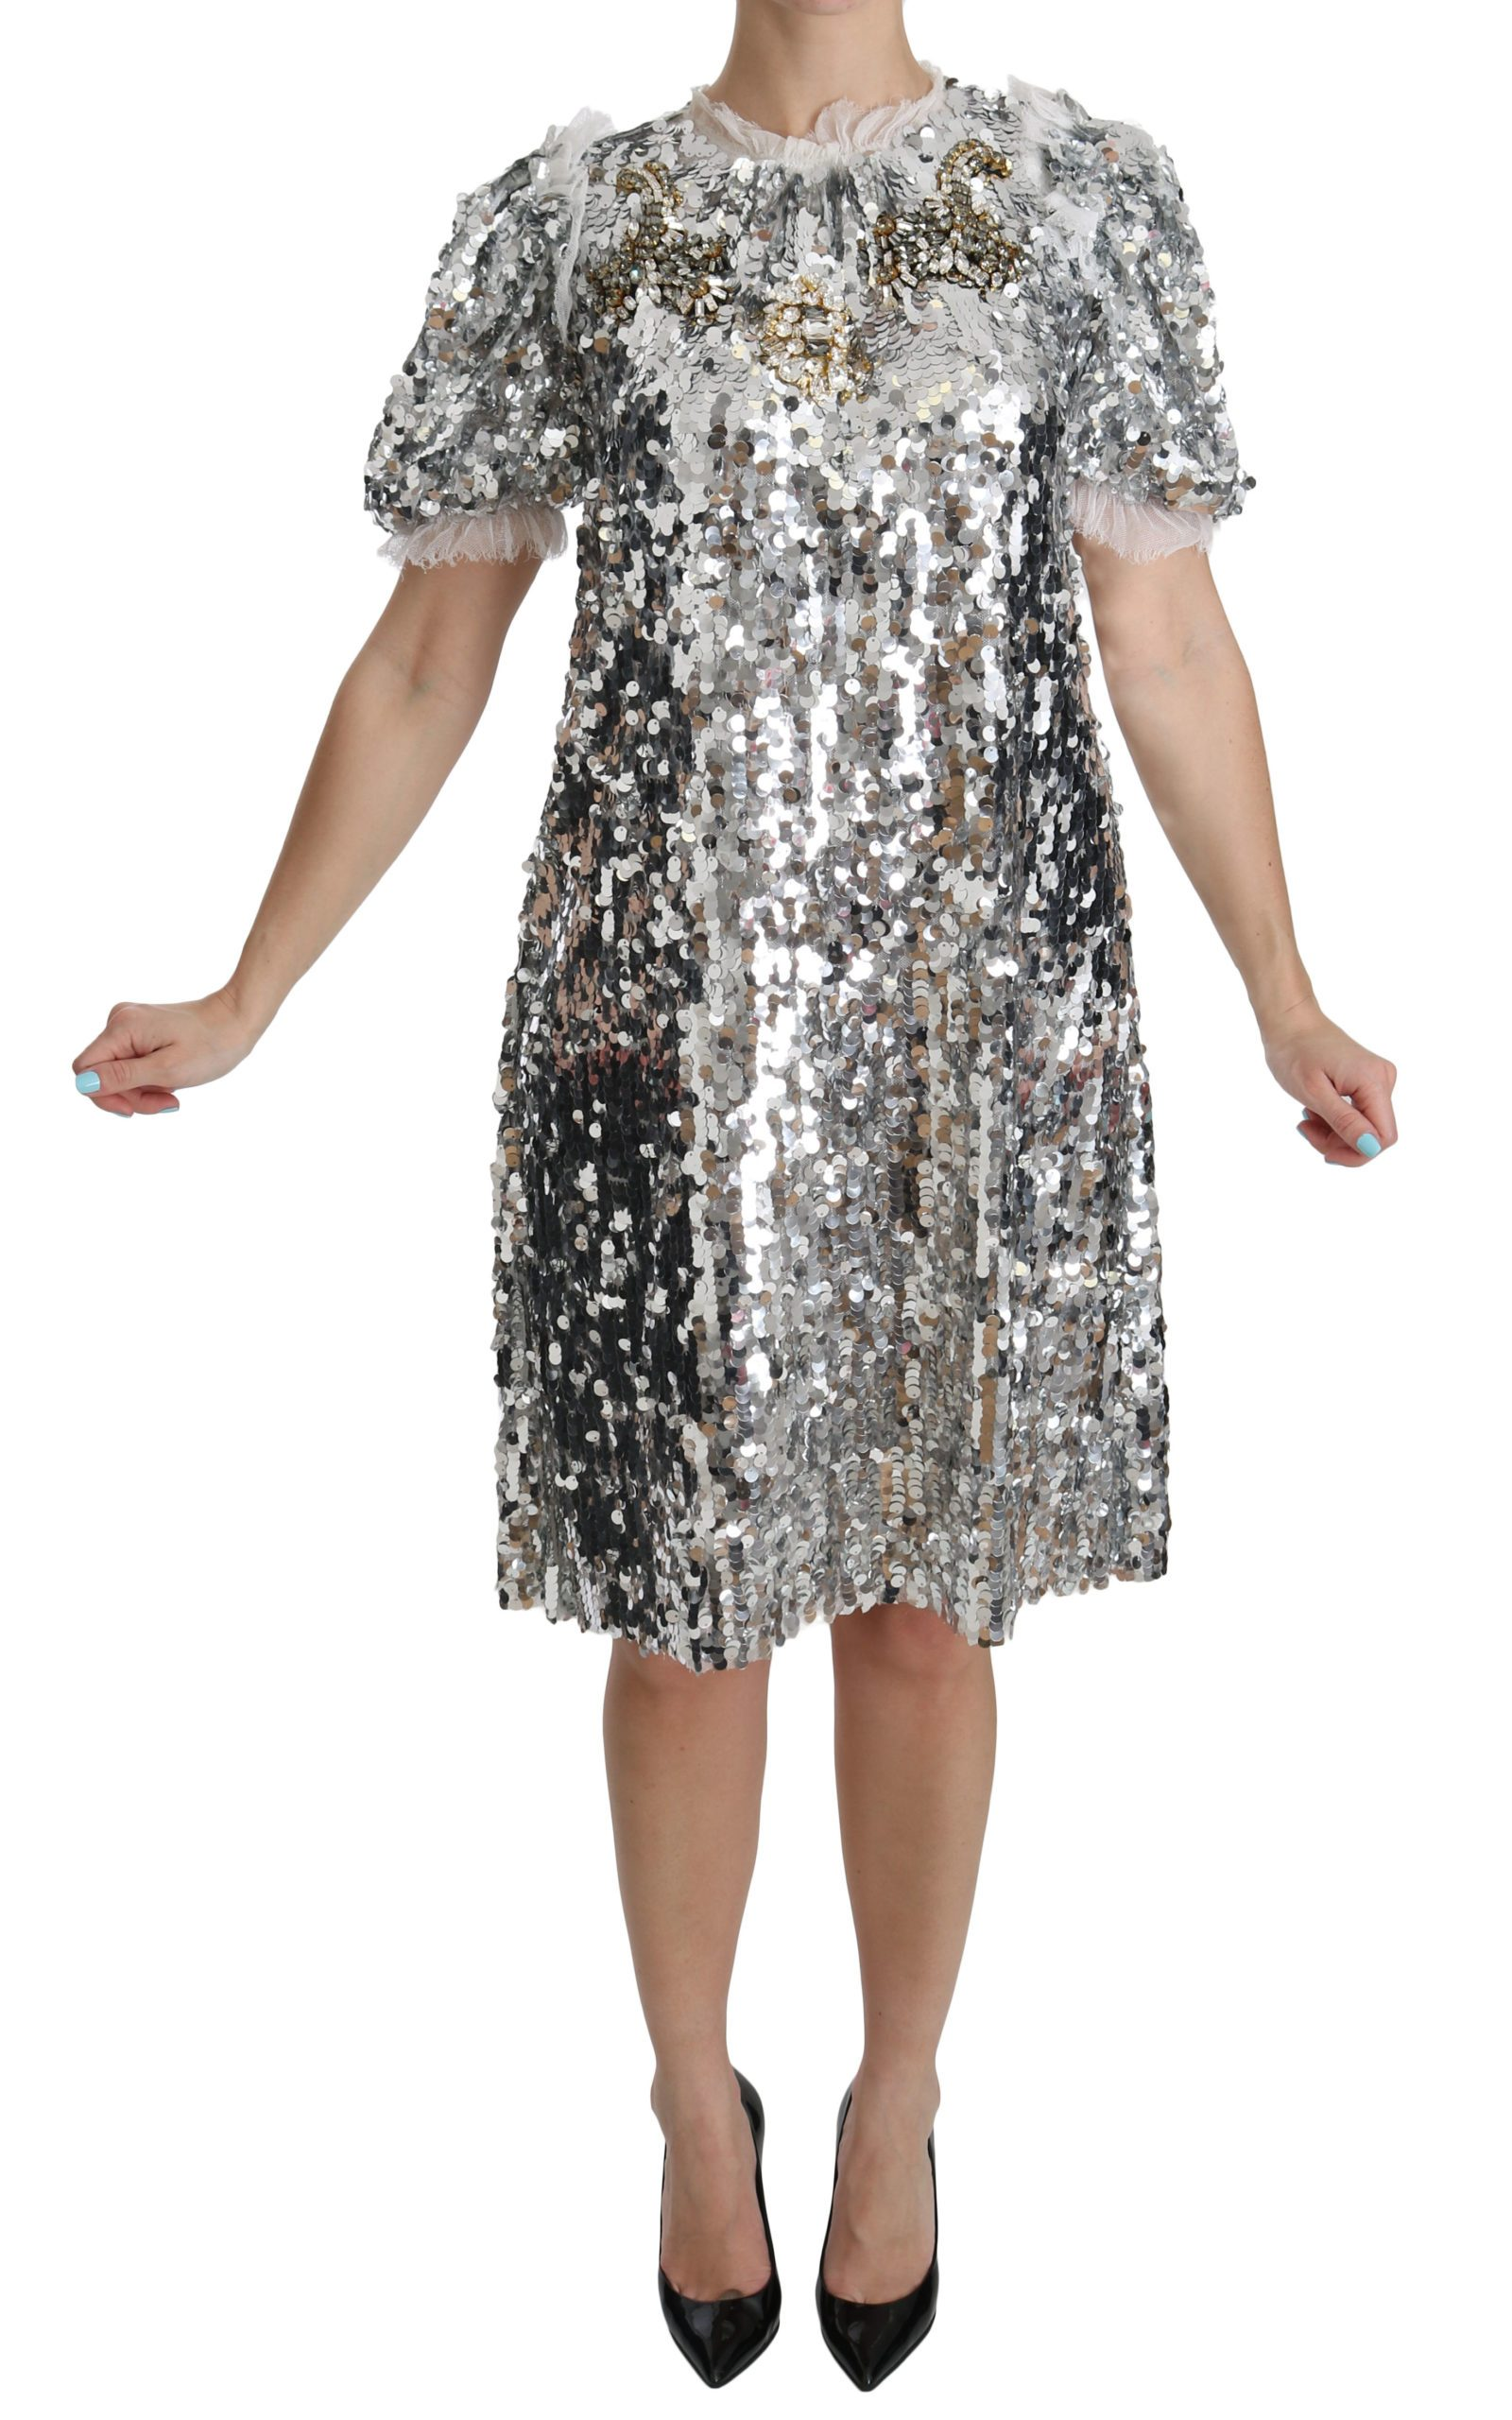 Dolce & Gabbana Women's Sequined Crystal Shift Gown Dress Silver DR2045 - IT40 S